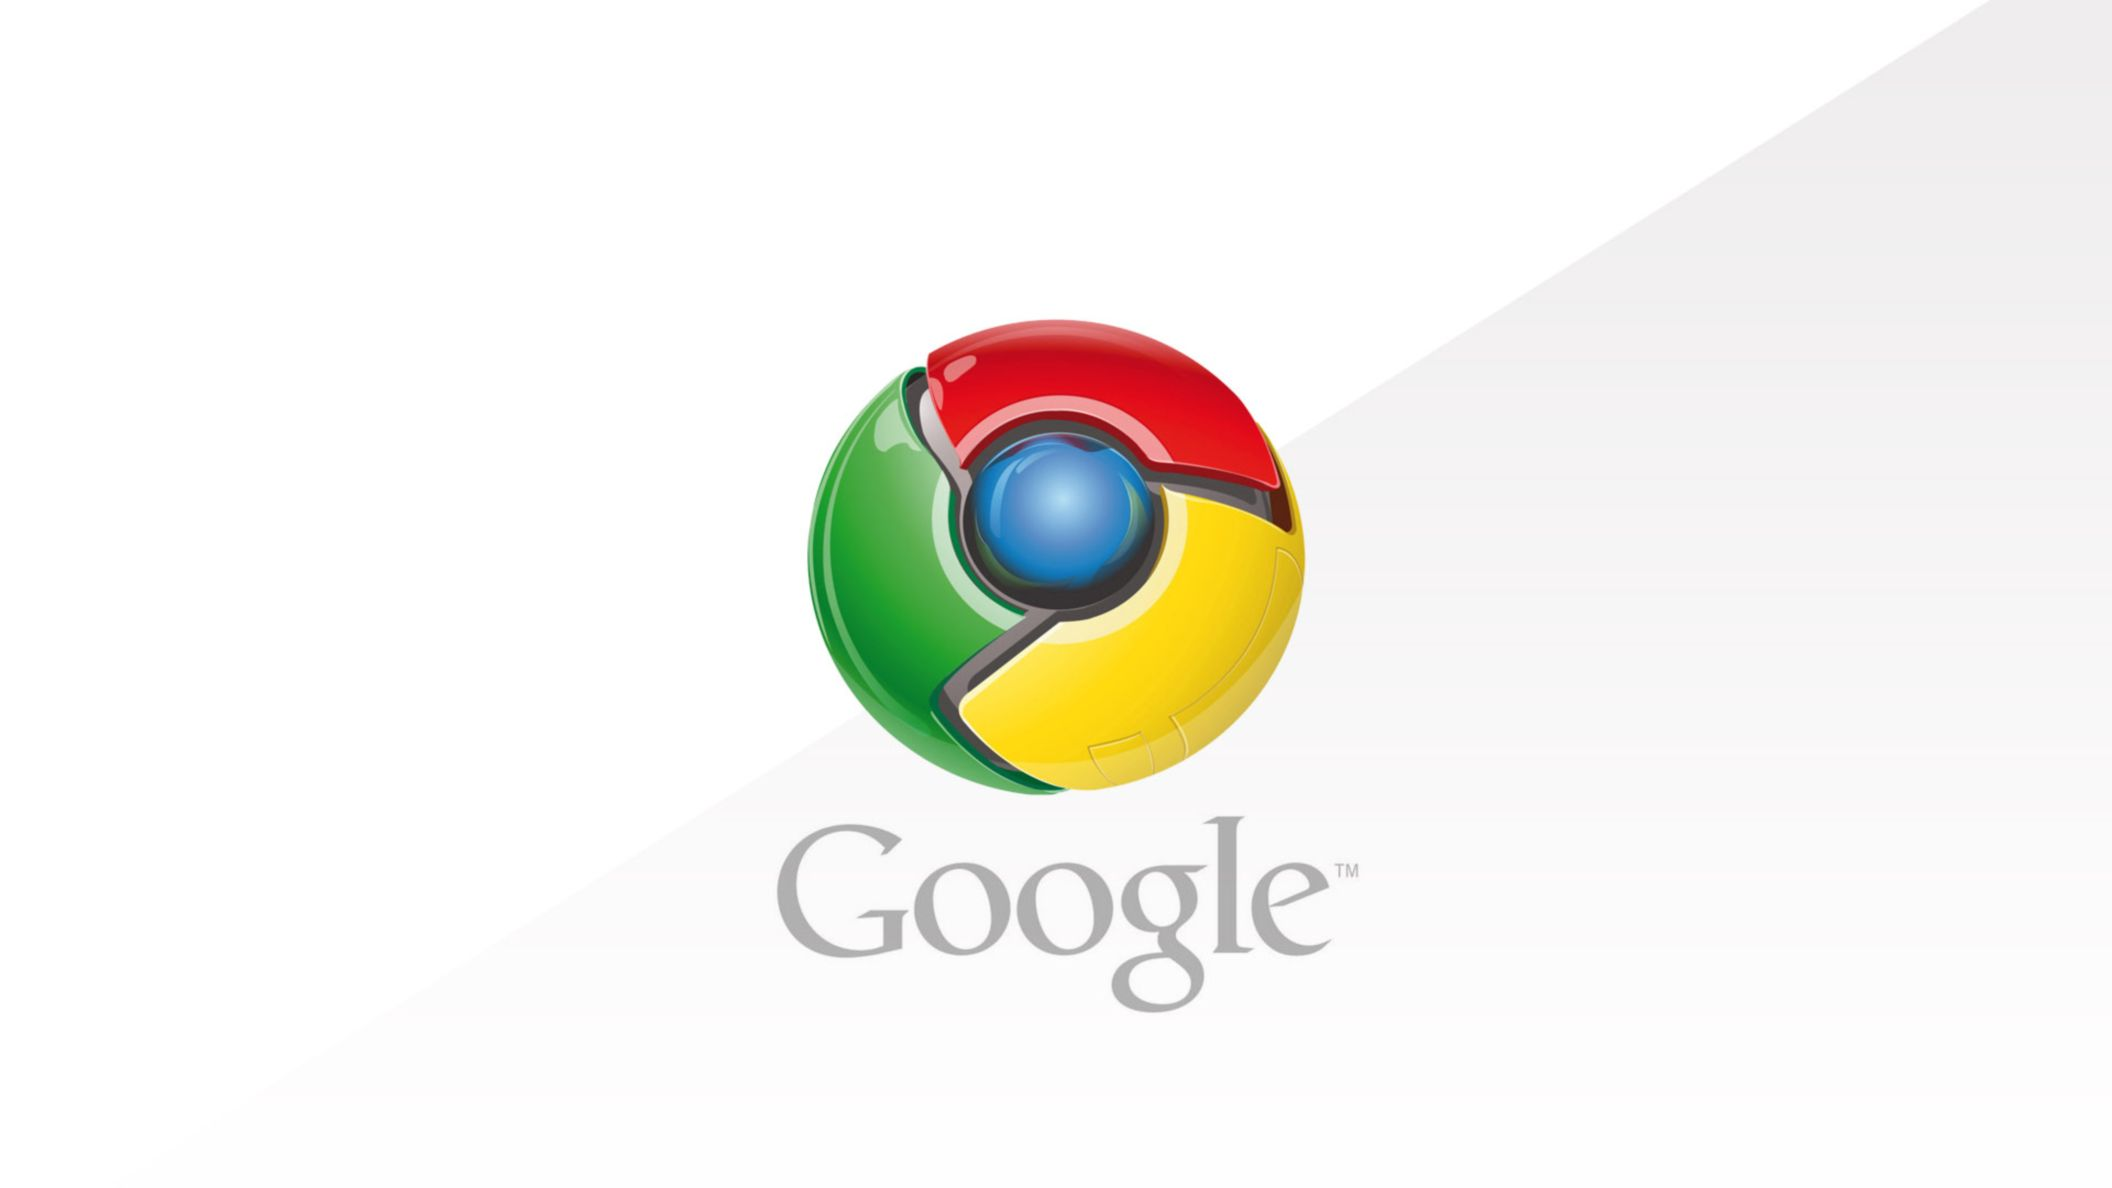 Download free HD Google Chrome 1080p Wallpaper, image